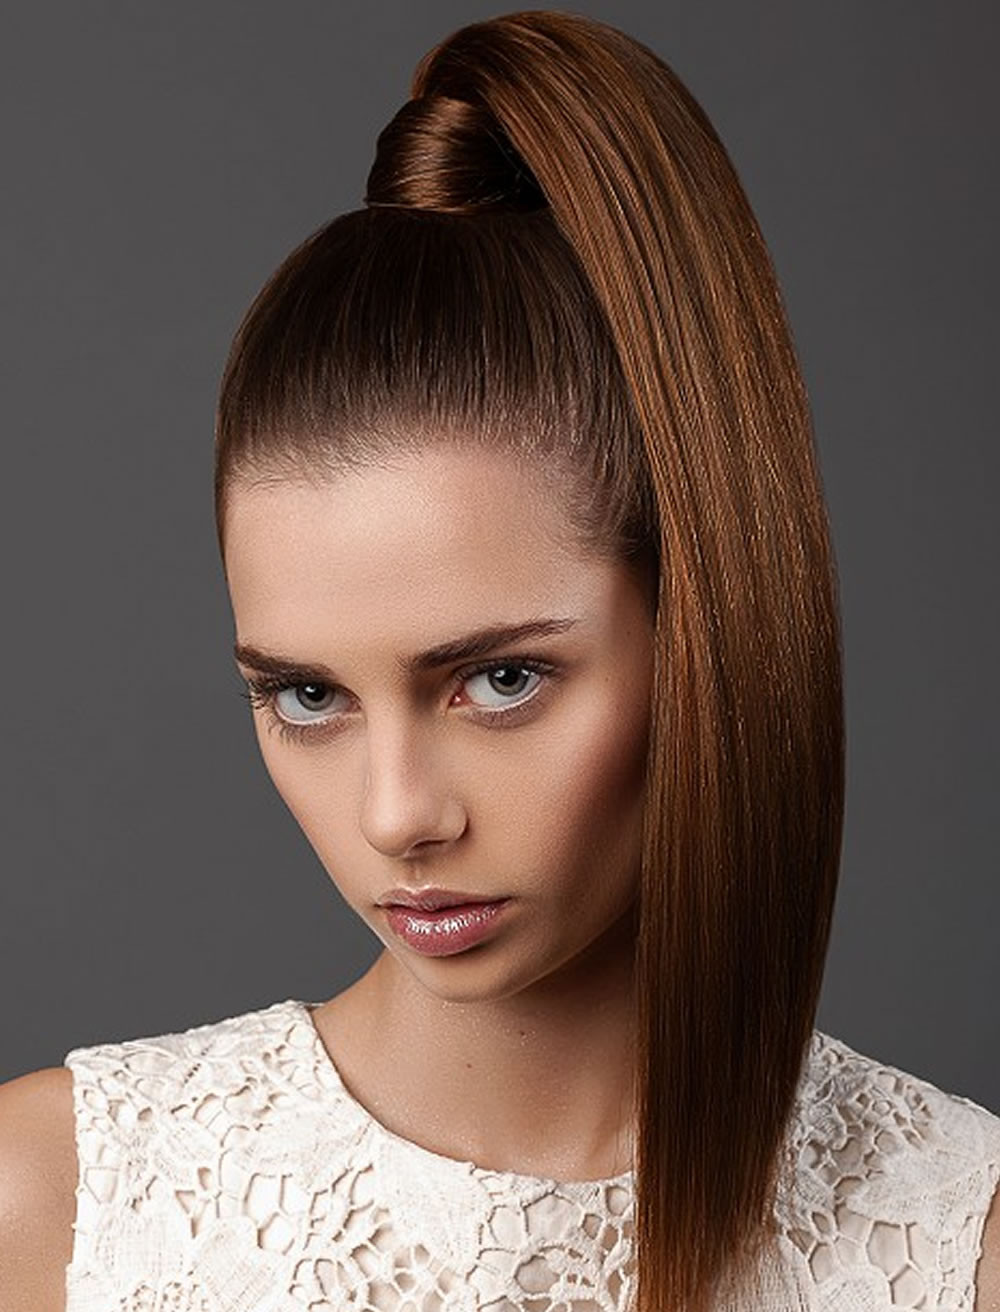 Hairstyles For Prom  32 Perfect Updo Hairstyles for Prom 2017 2018